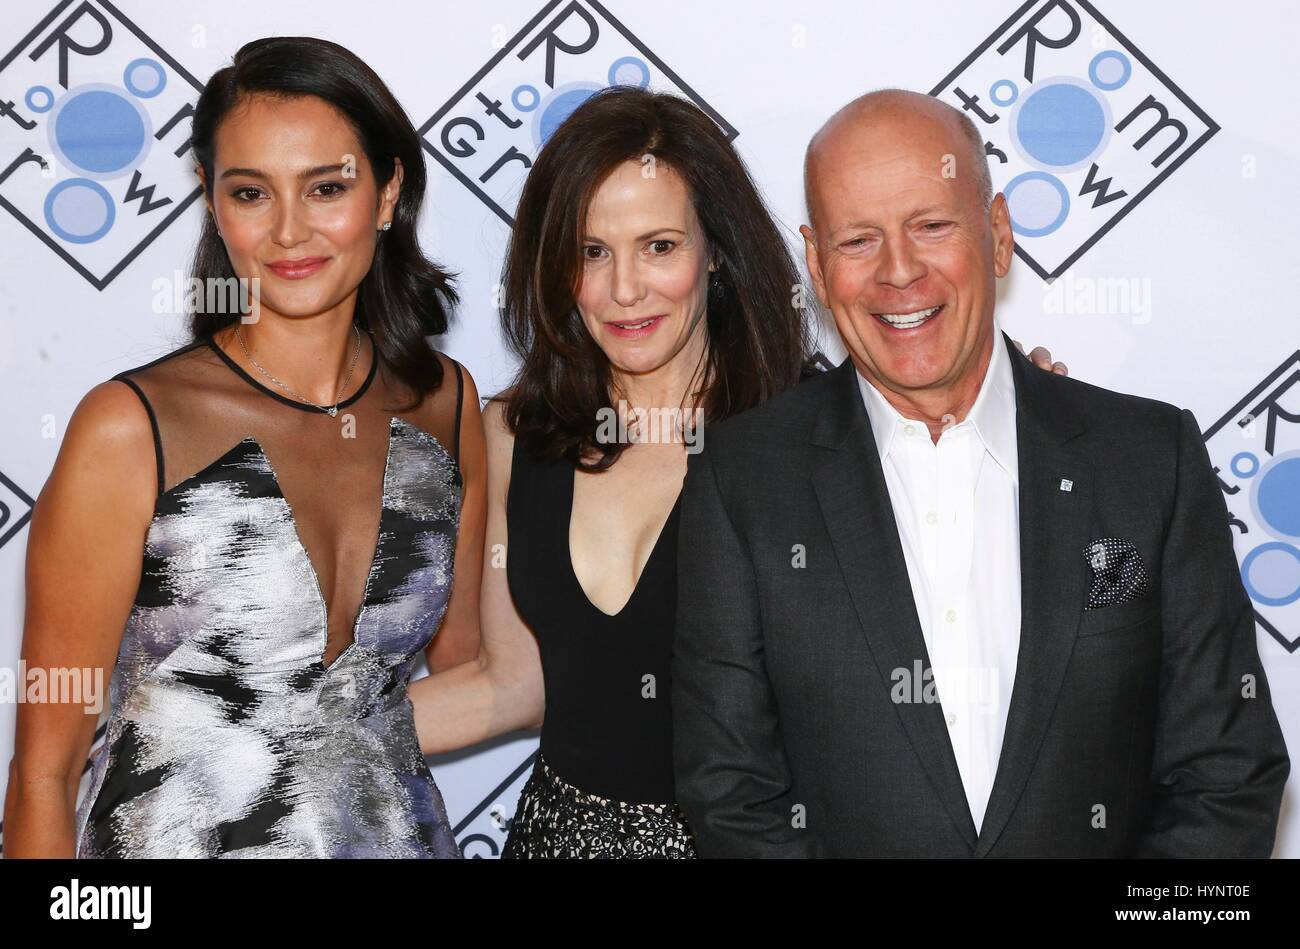 New York, NY, USA. 5. April 2017. Emma Hemming-Willis, Mary-Louise Parker, Bruce Willis im Ankunftsbereich für Stockbild